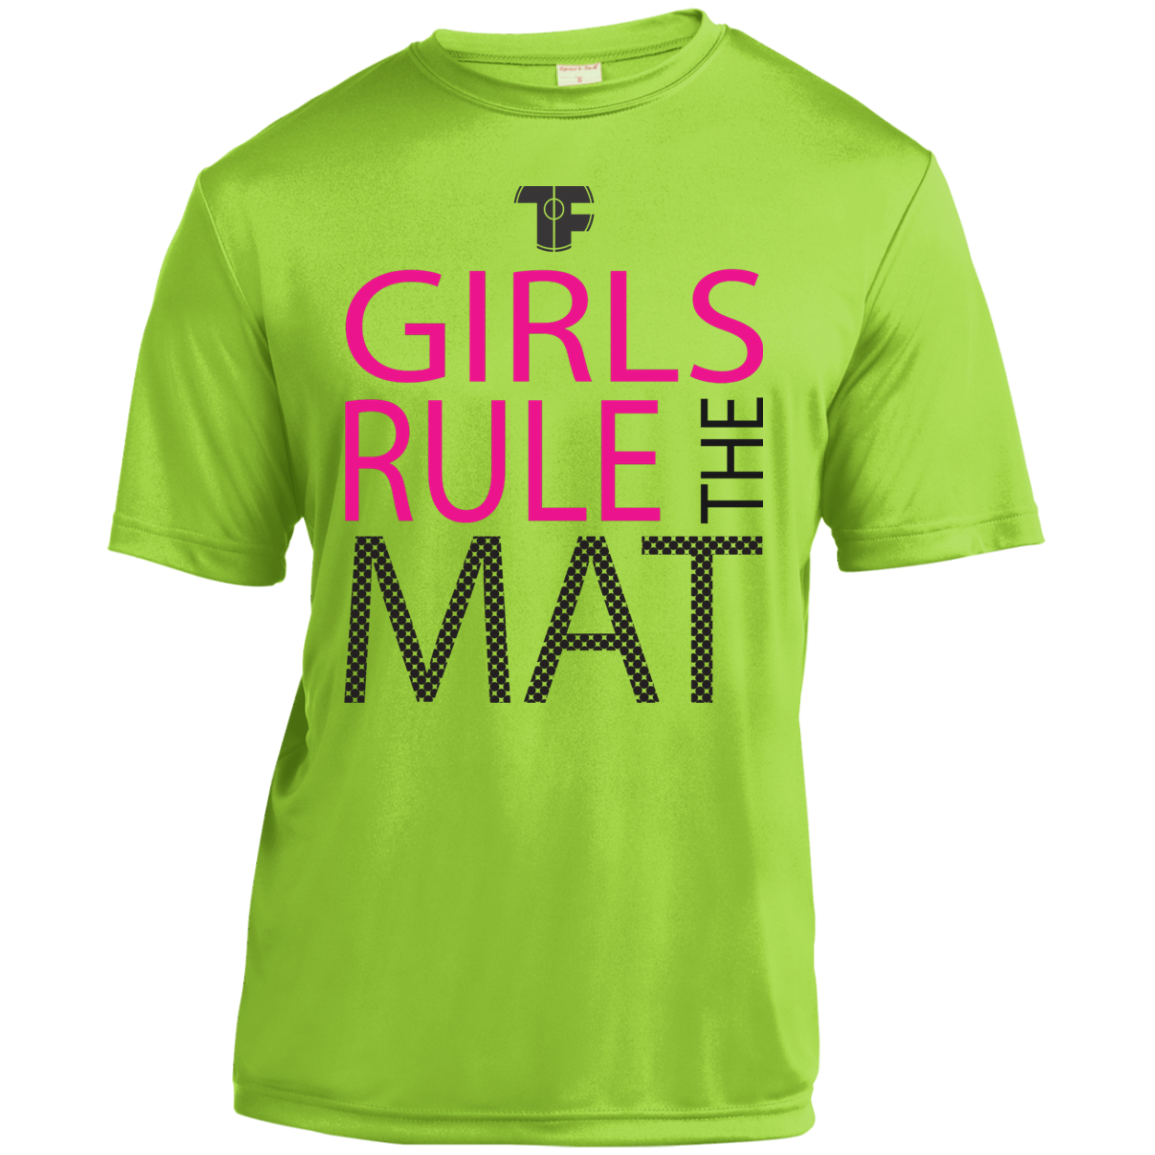 Premium Green Tech Fall Youth Wrestling T Shirt Girls Rule The Mat This Shirt Is A Tip Of The Hat To The Wrestling Shirts Girls Rules Moisture Wicking Shirt